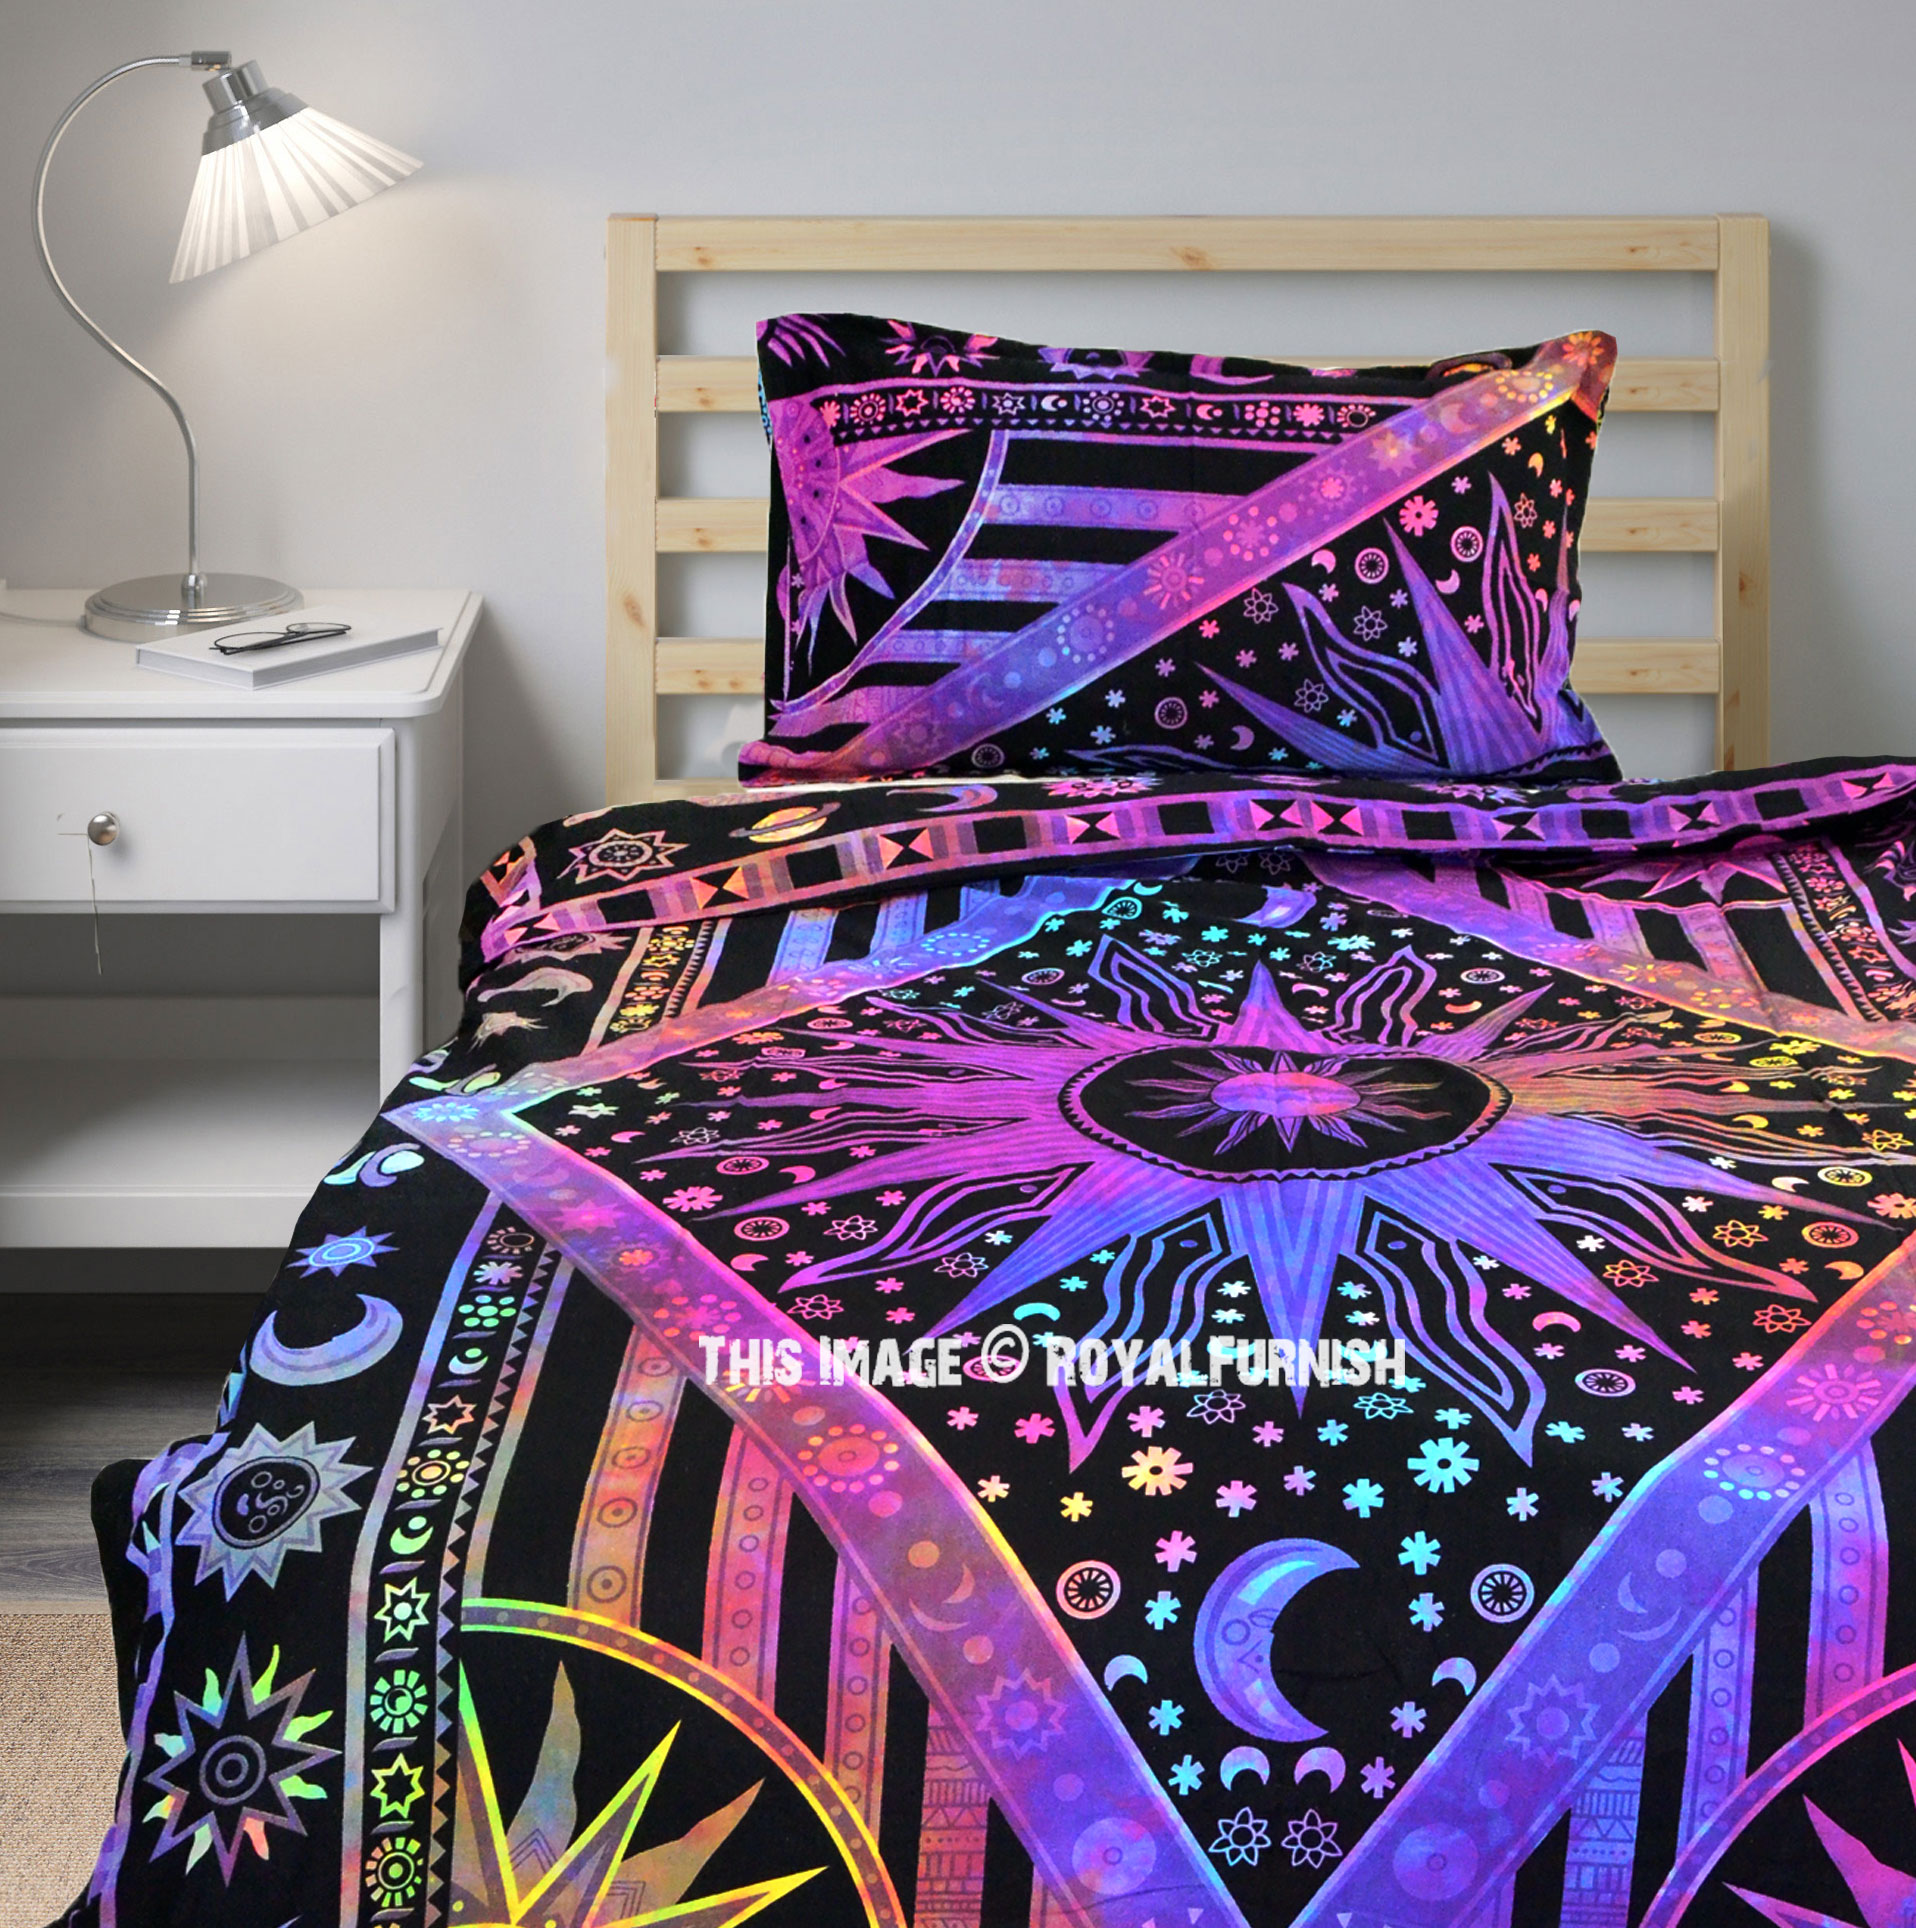 Tie Dye Celestial Sun Moon Duvet Cover Set With One Pillow Sham Royalfurnish Com